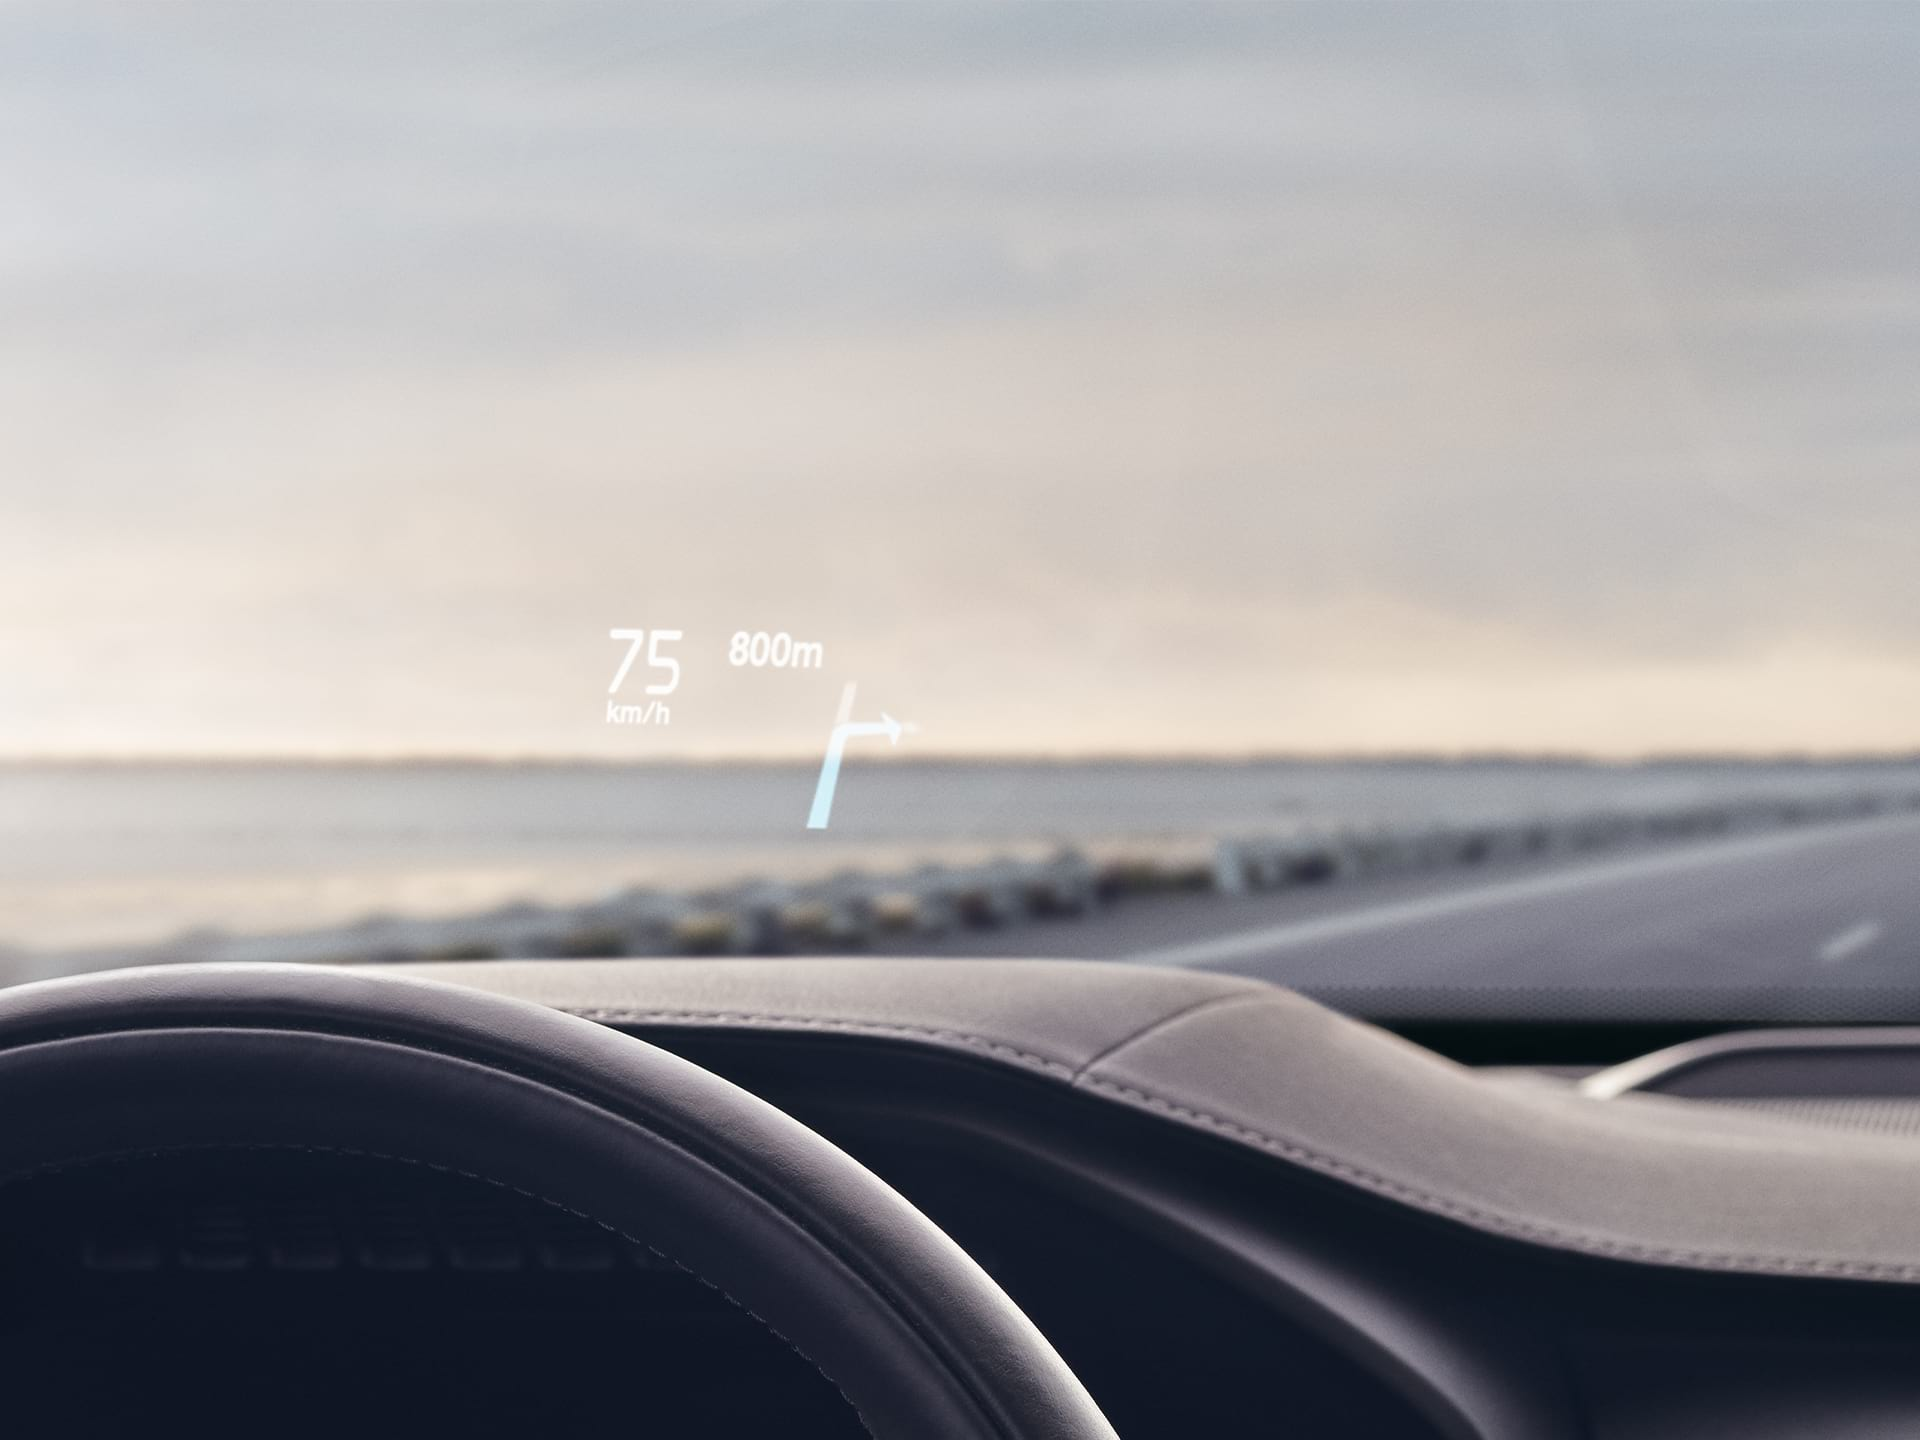 Inside a Volvo, head-up display showing driving speed and navigation on the windshield.